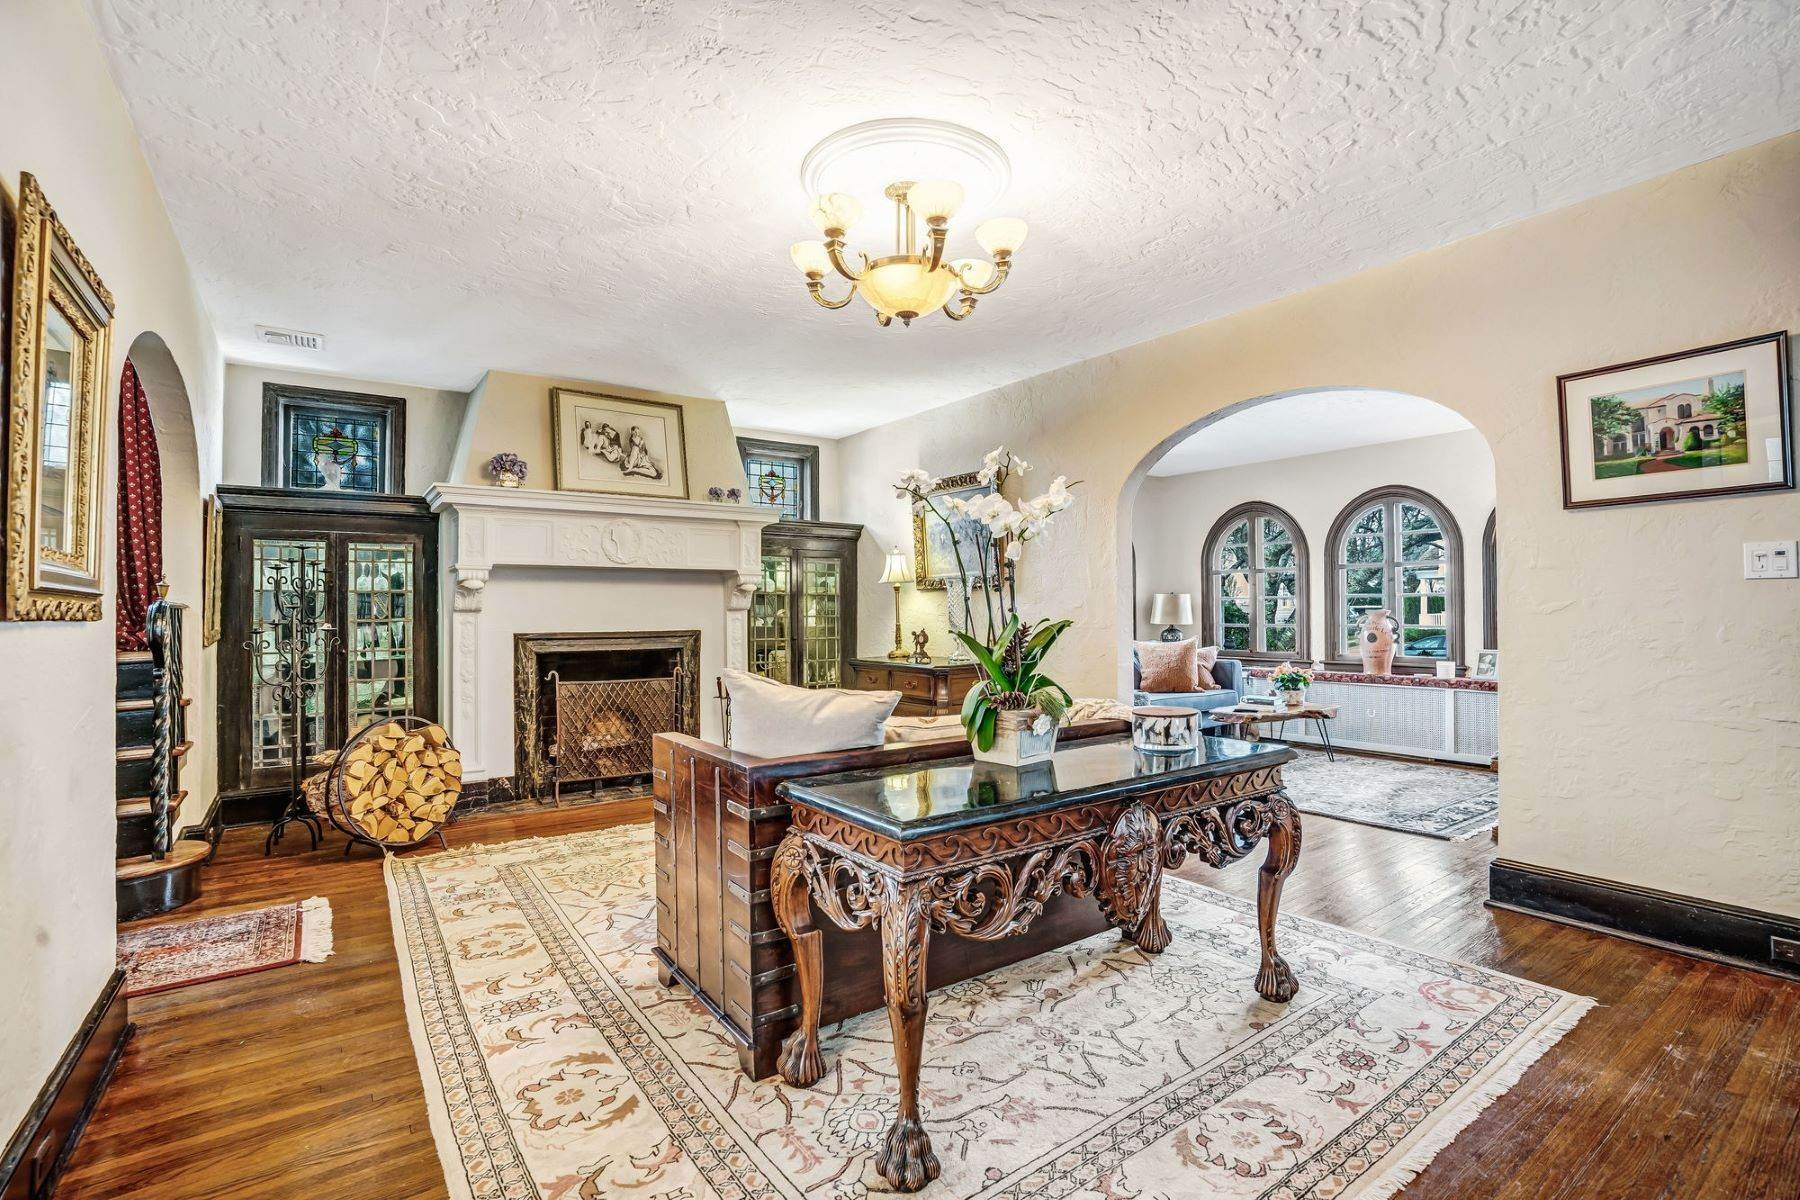 11. Single Family Homes for Sale at Strikingly Beautiful Home 31 Worthington Avenue Spring Lake, New Jersey 07762 United States